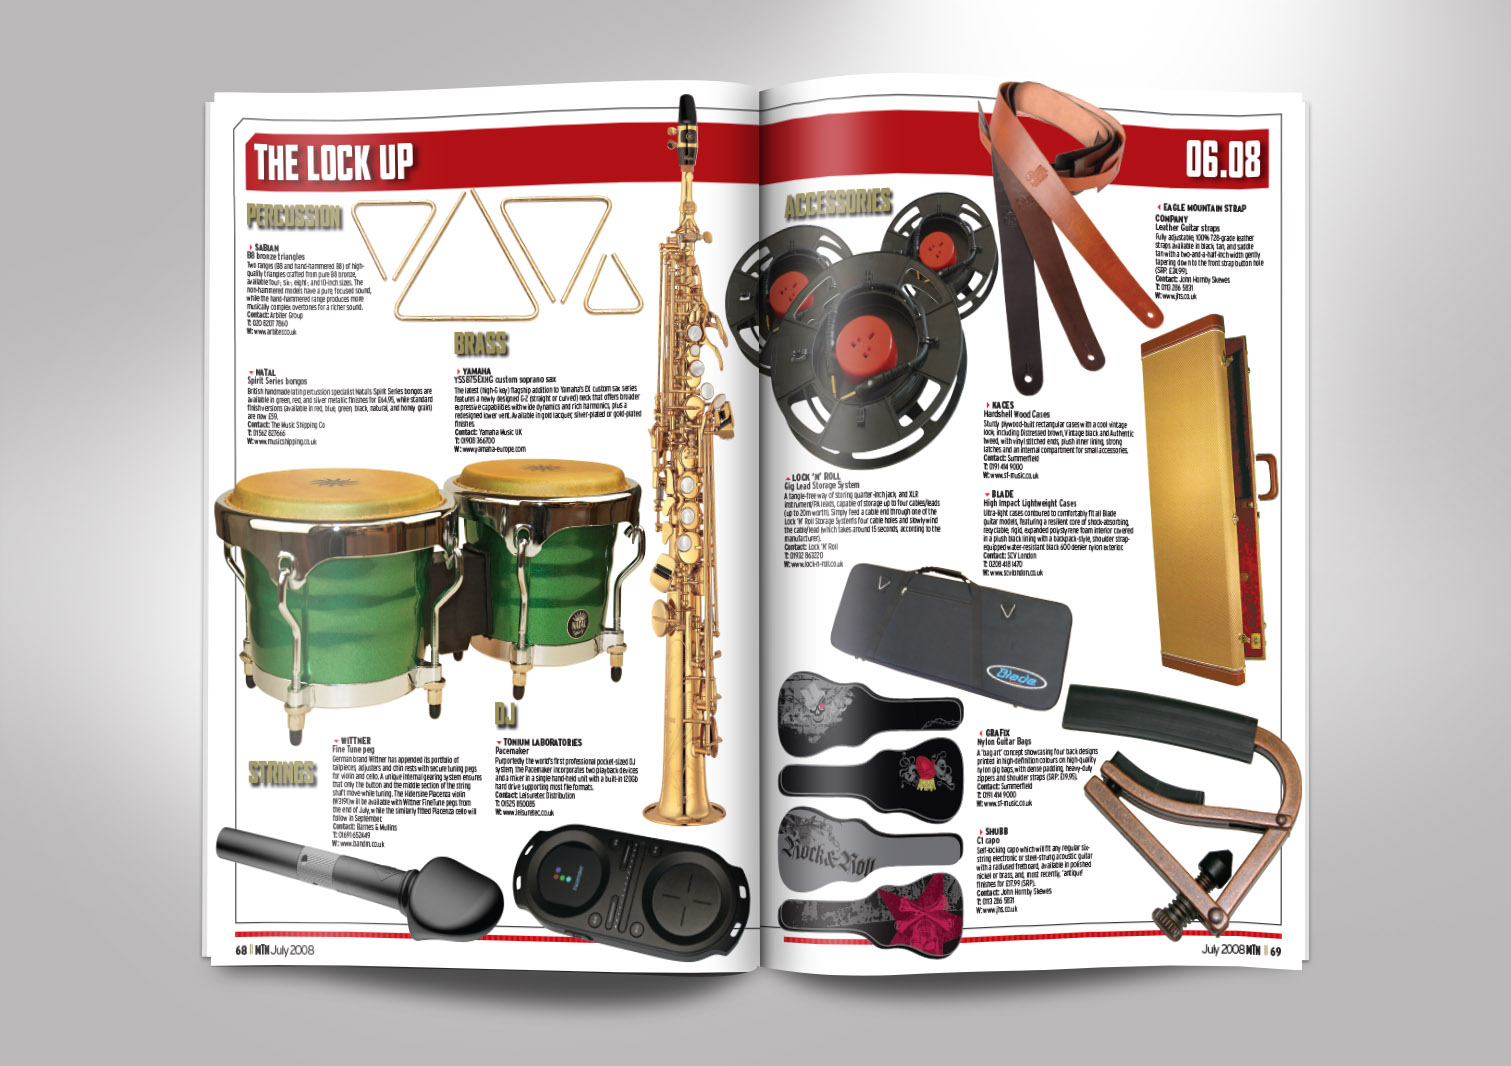 Music Trade News Magazine Inside Pages 15 and 16